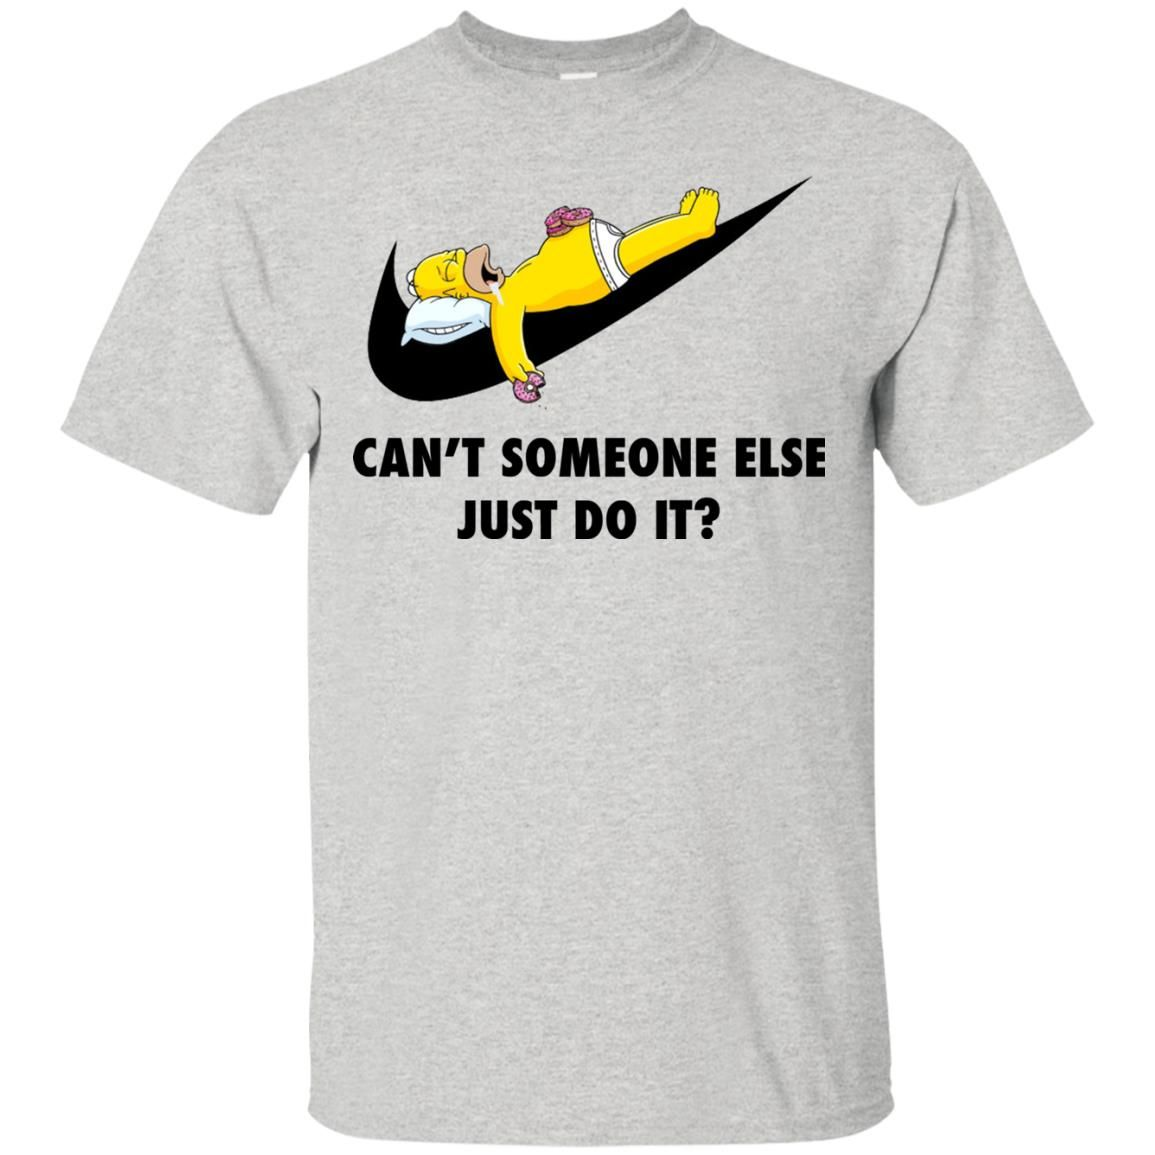 image 1402 - The Simpsons: Can't someone eles just do it shirt, tank, hoodie